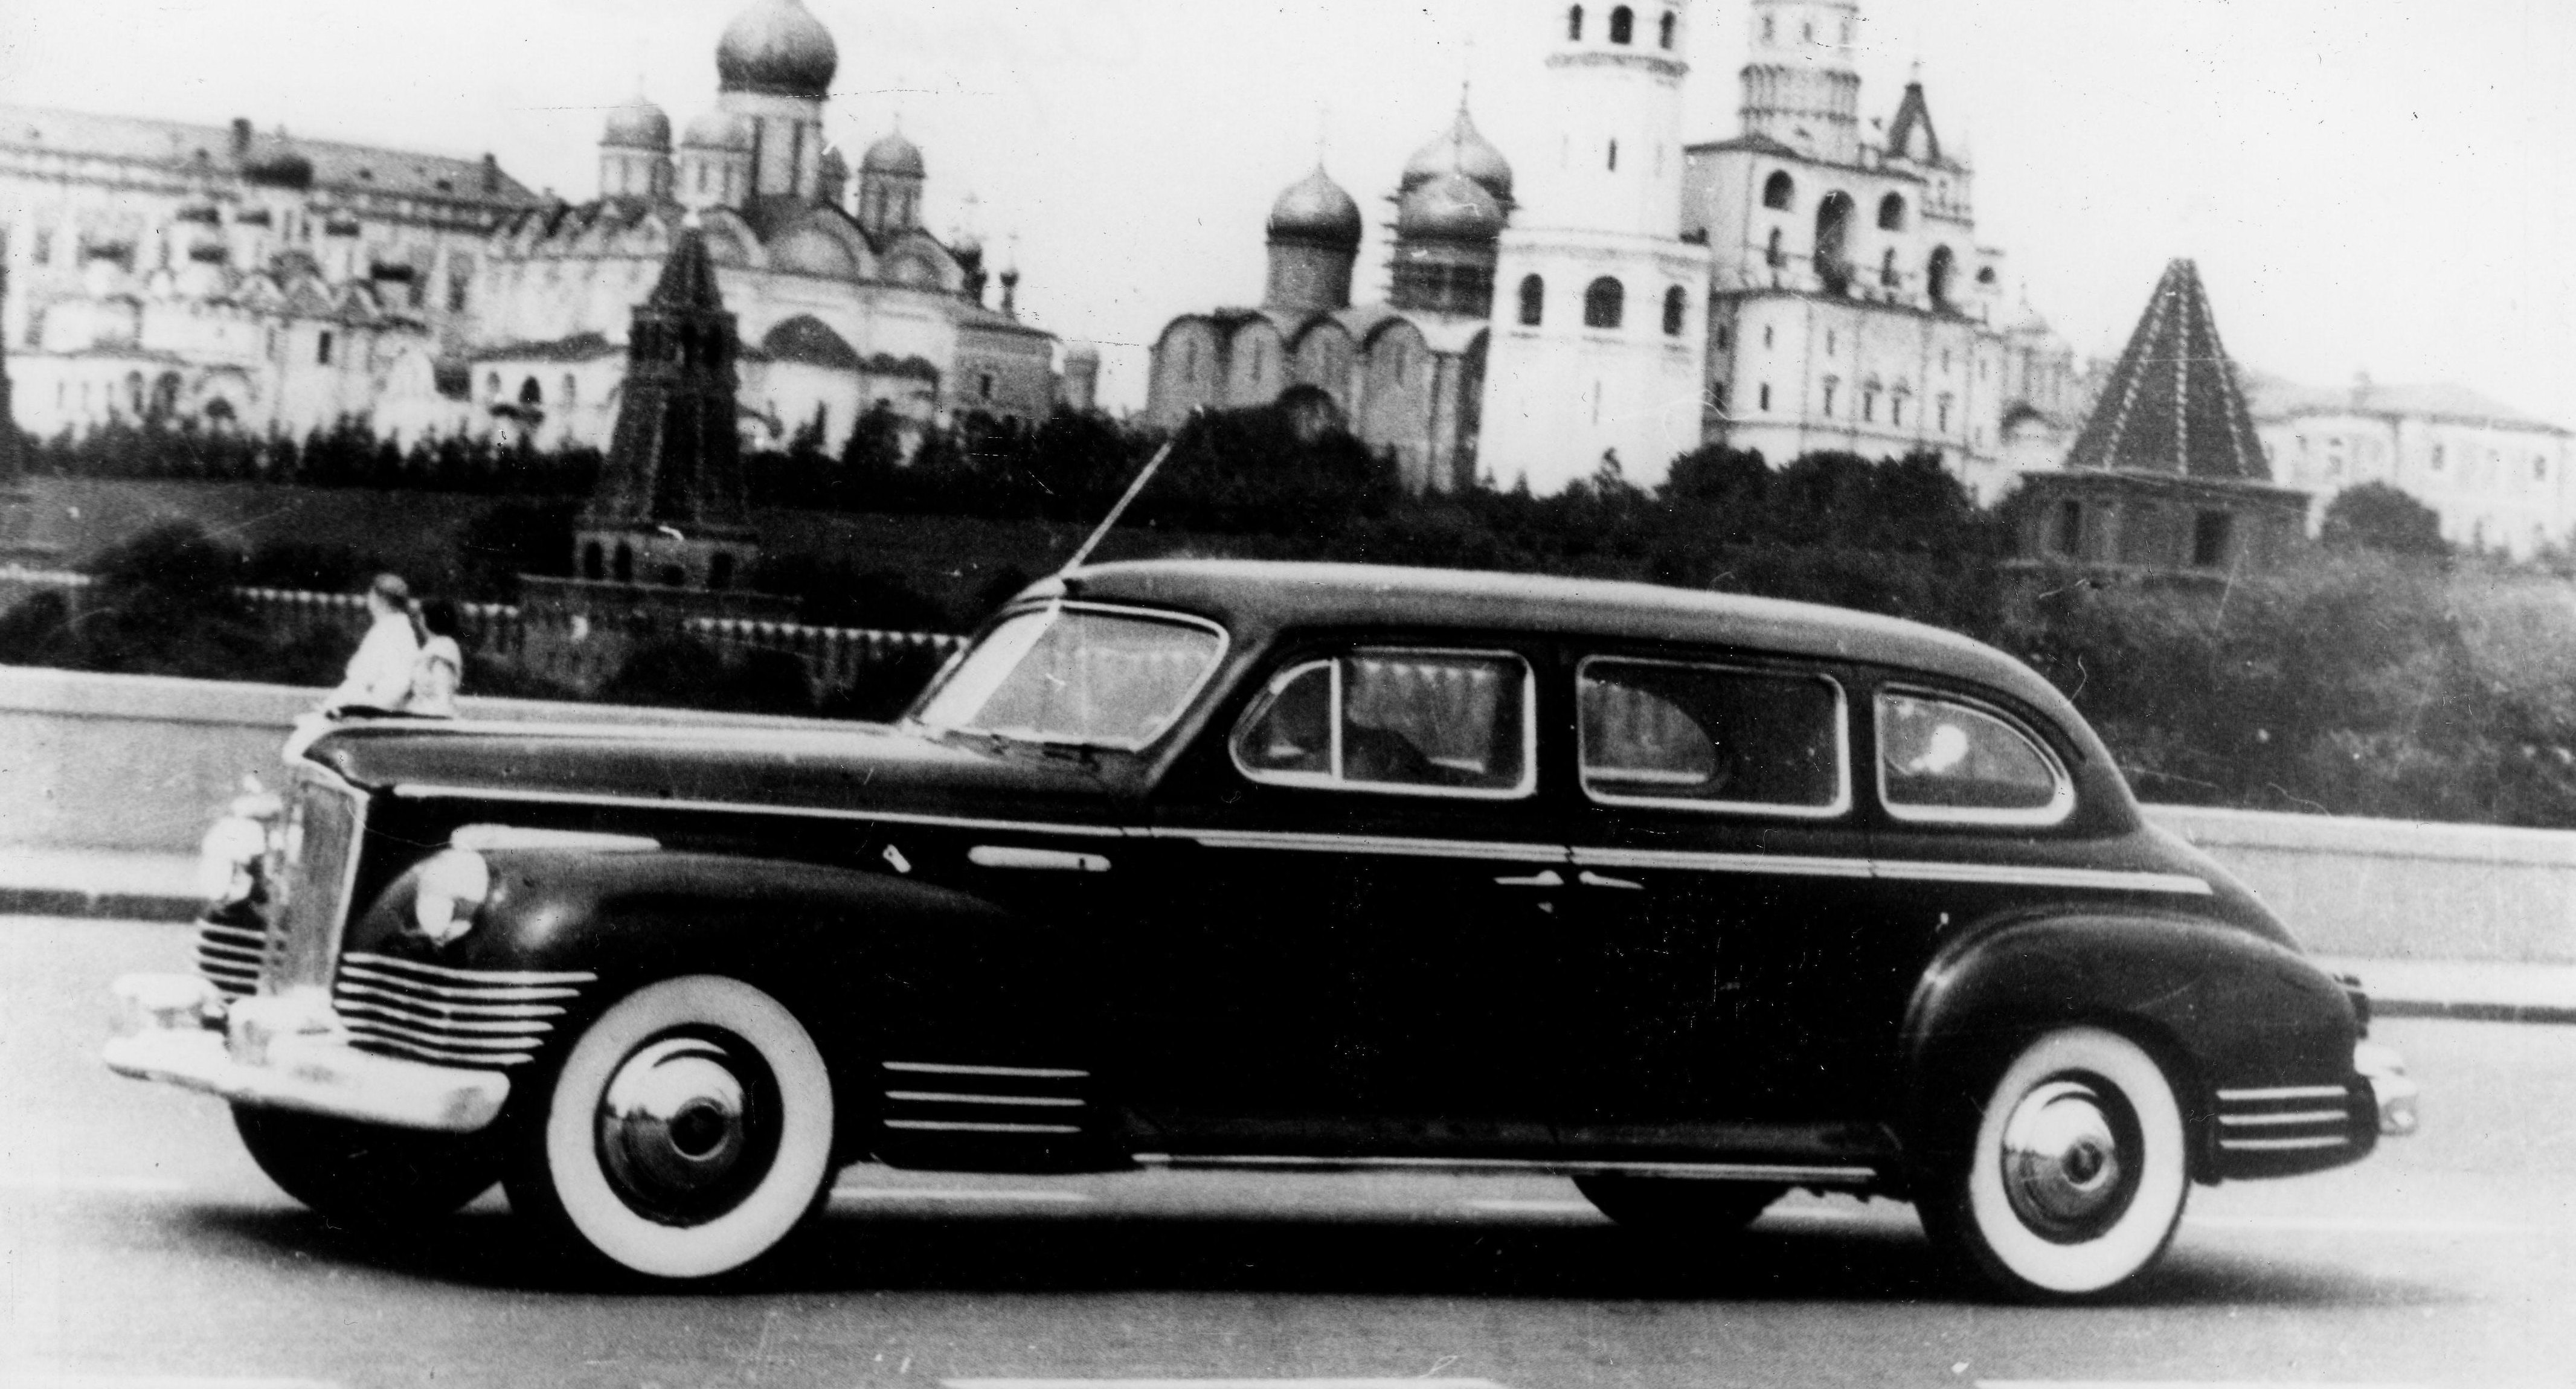 ЗИС-110 vs Packard 180: как в СССР содрали американский членовоз